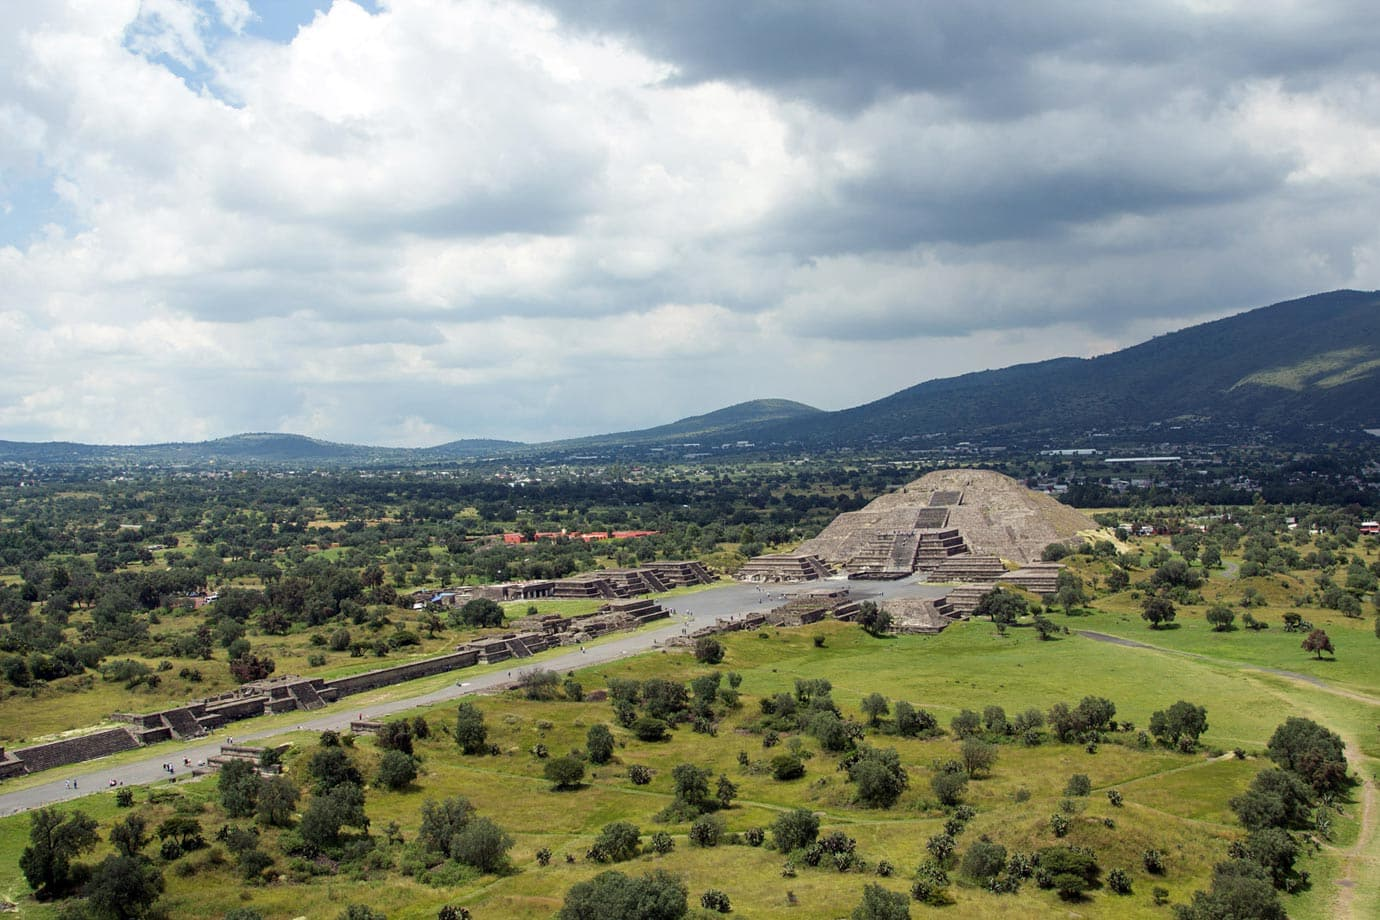 Teotihuacán was once the largest Pre-Colombia city in all of the Americas